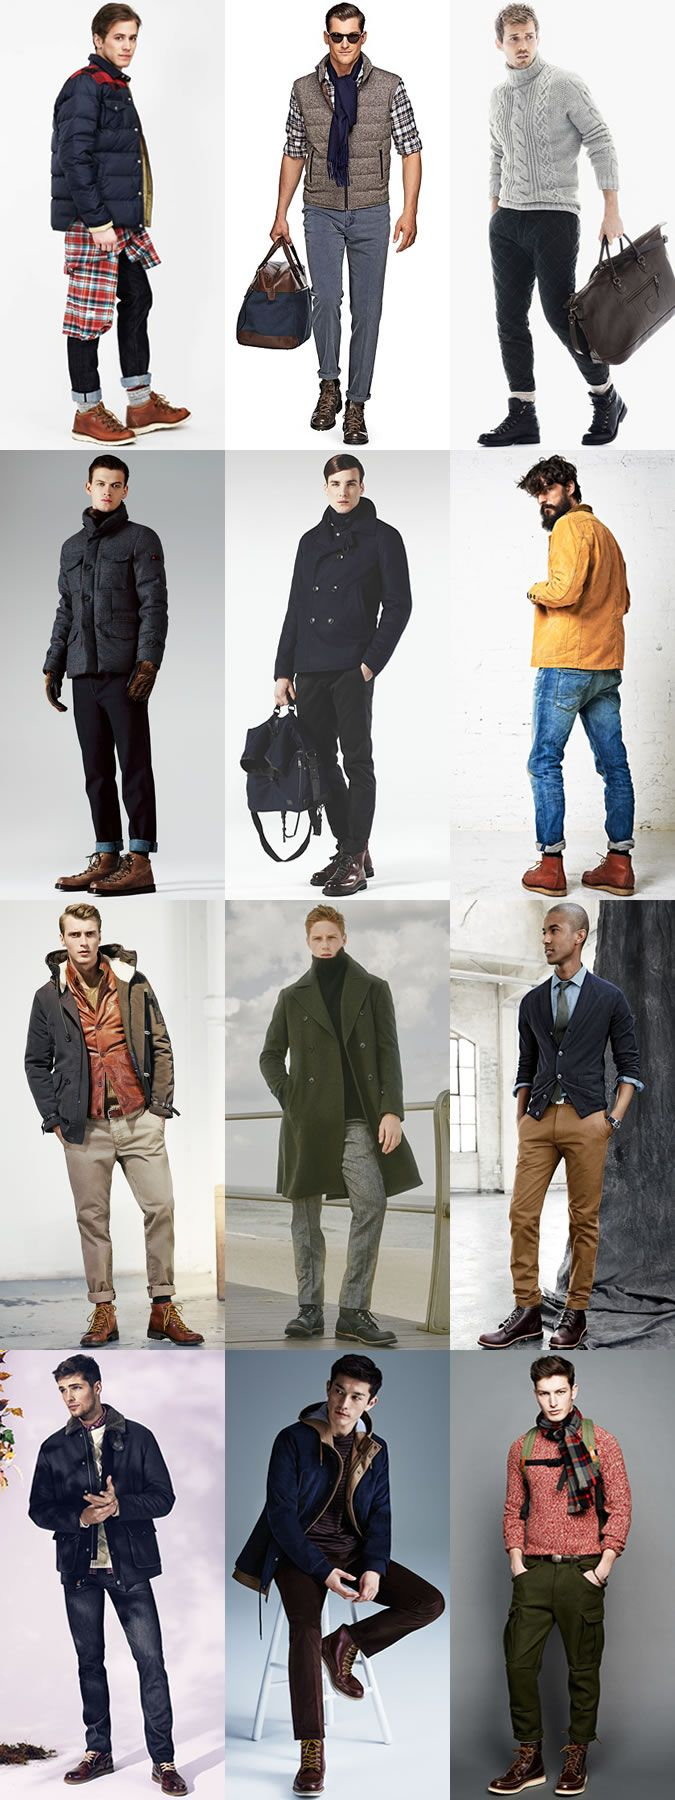 Men s Footwear Styles For Autumn Winter 2015  Hiking Boots Outfit  Inspiration Lookbook 5c9cba61d1